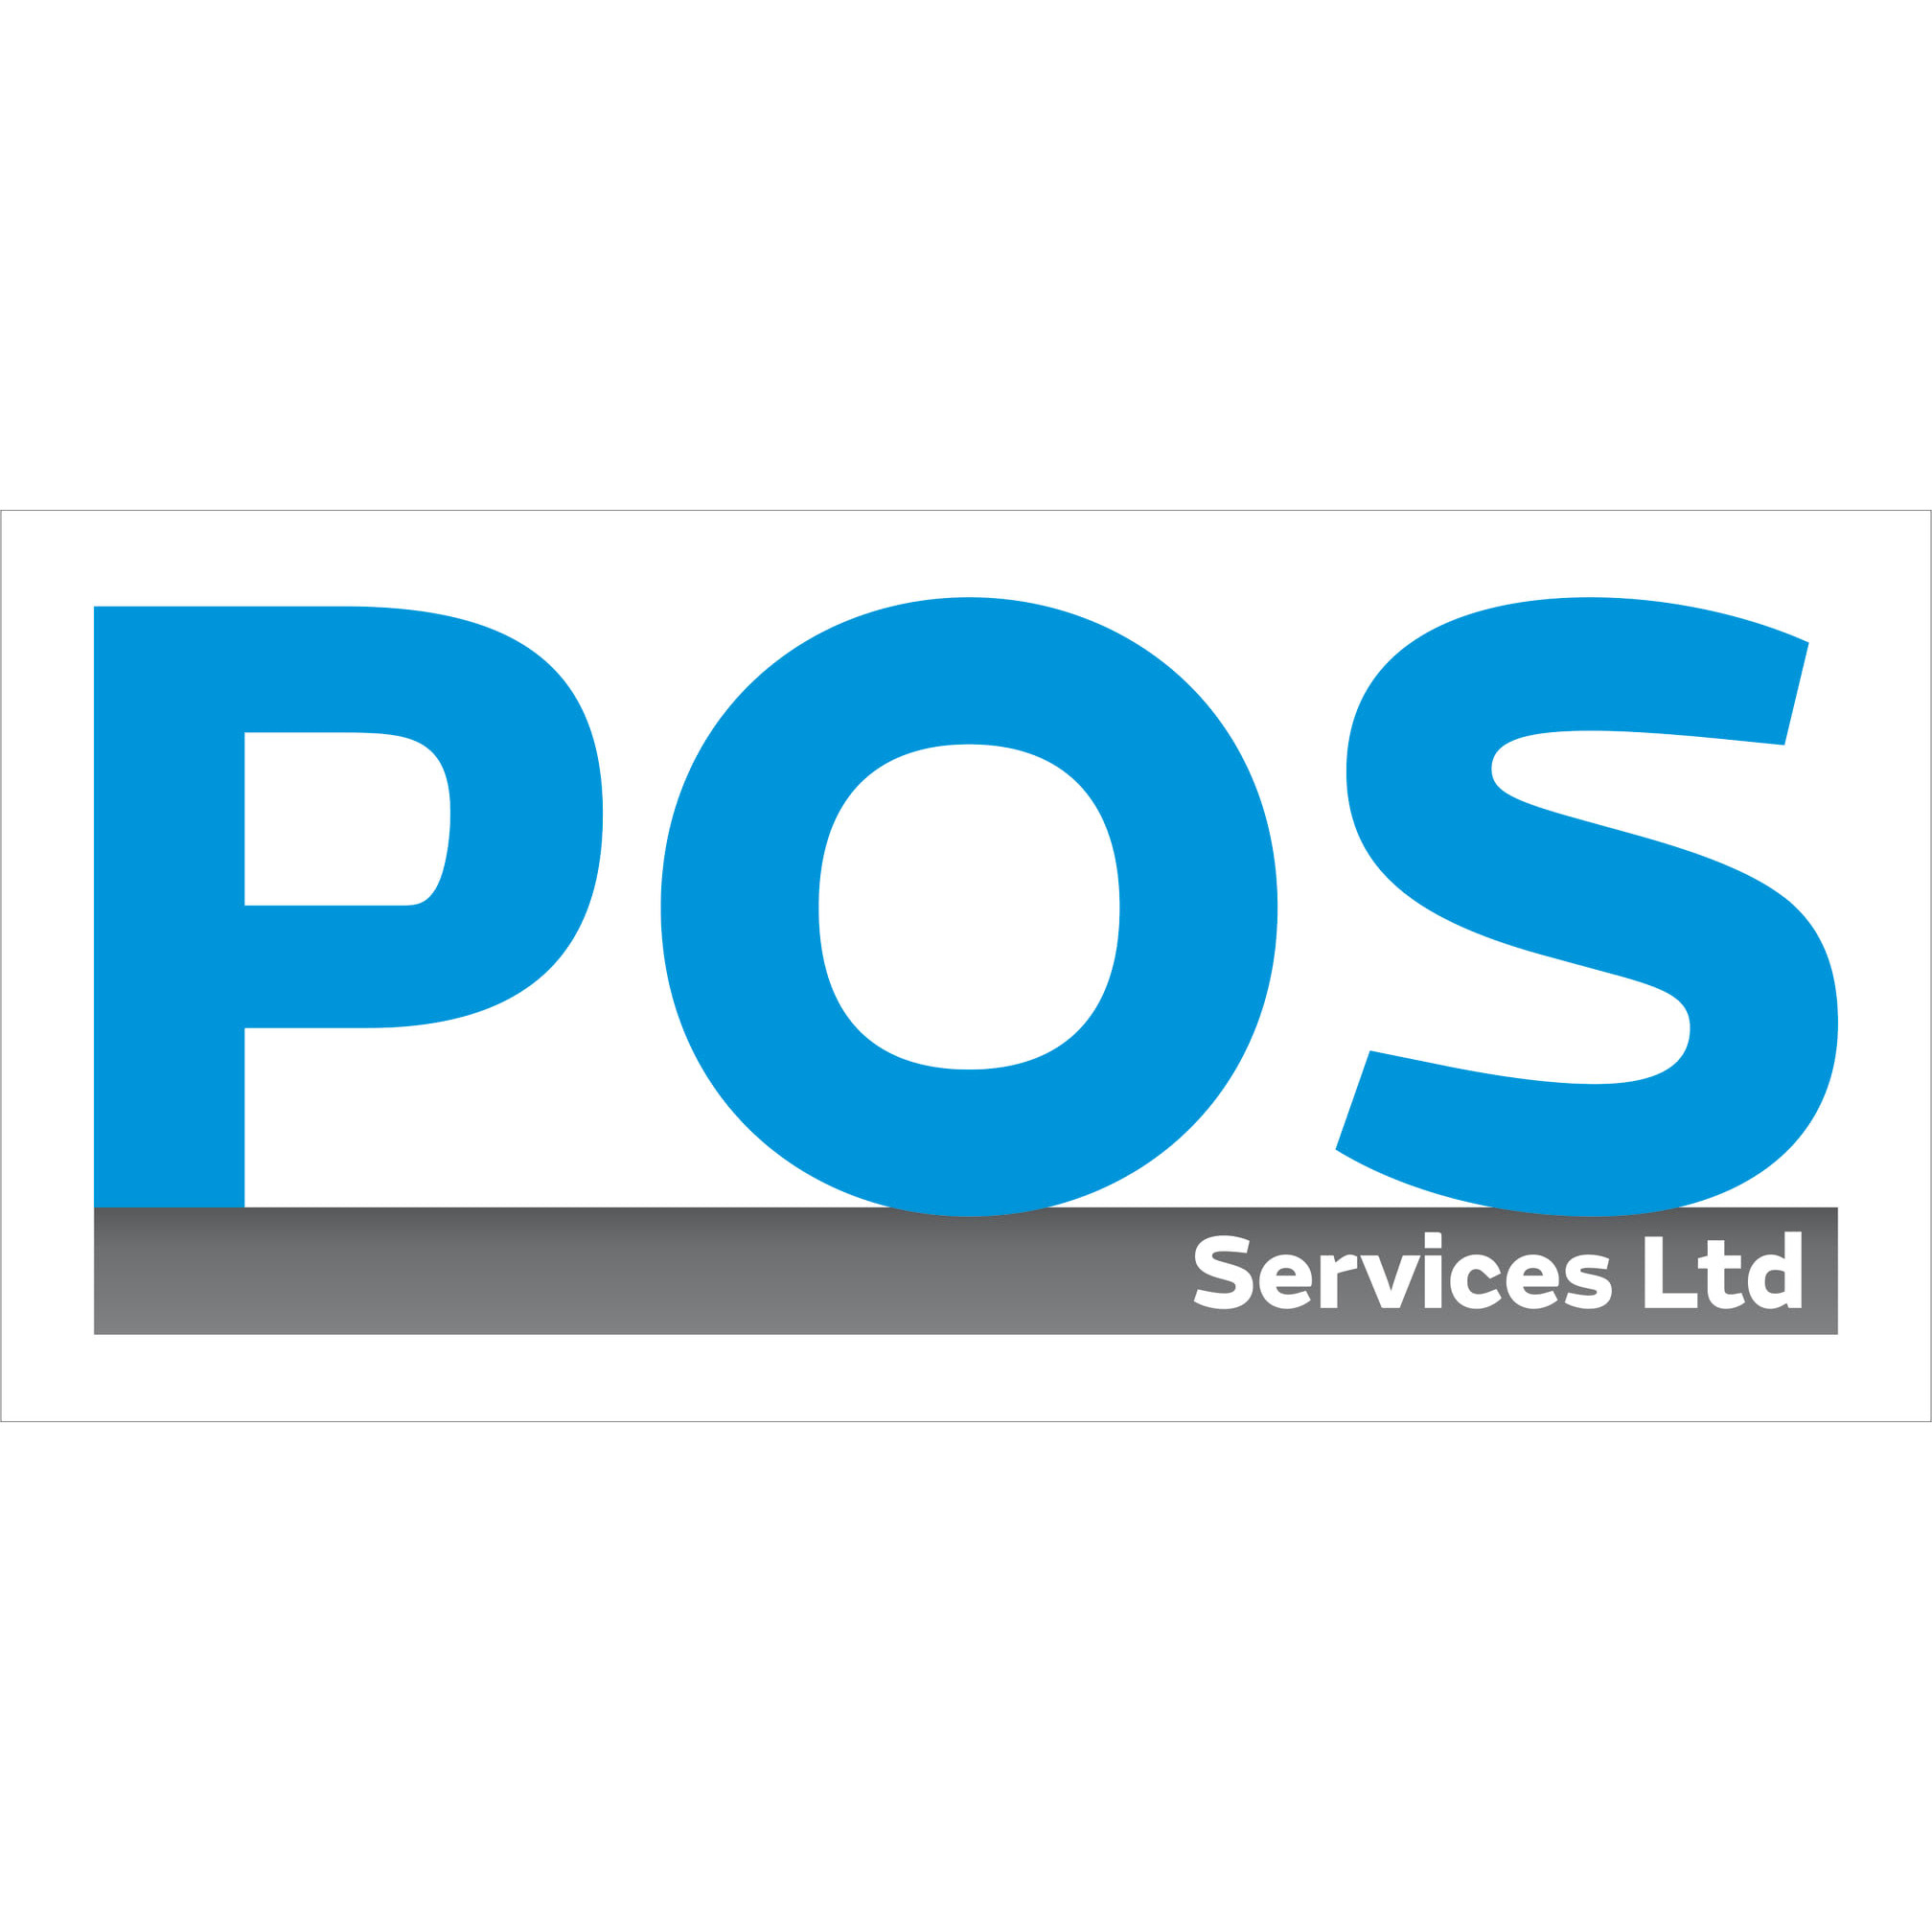 P And O Scaffolding Services Ltd